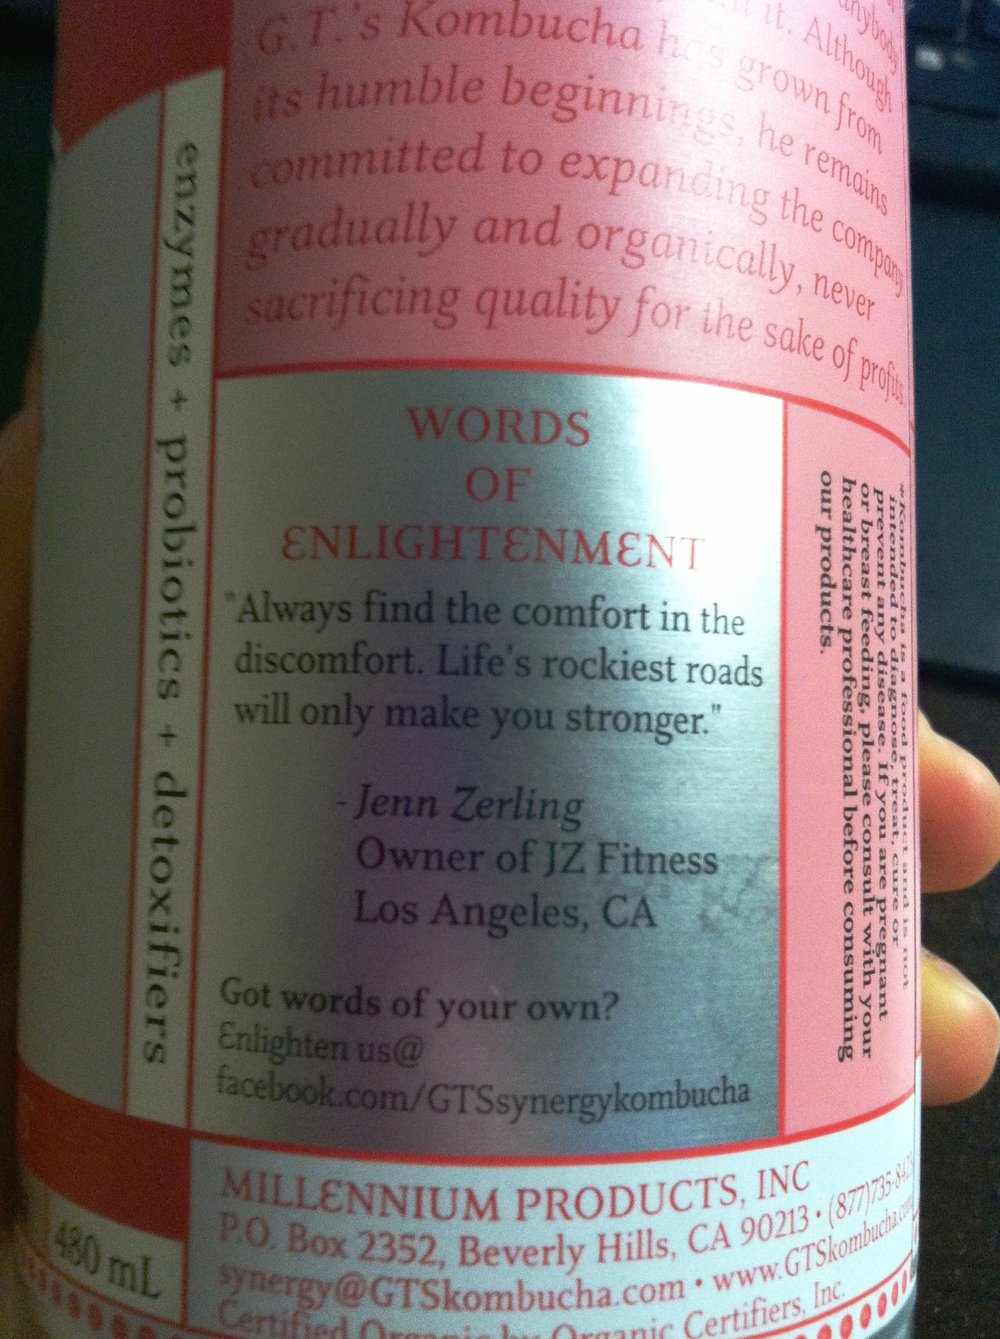 GTs_Kombucha_Guava_Goddess_Kombucha_Enlightened_Synergy_4369630.png